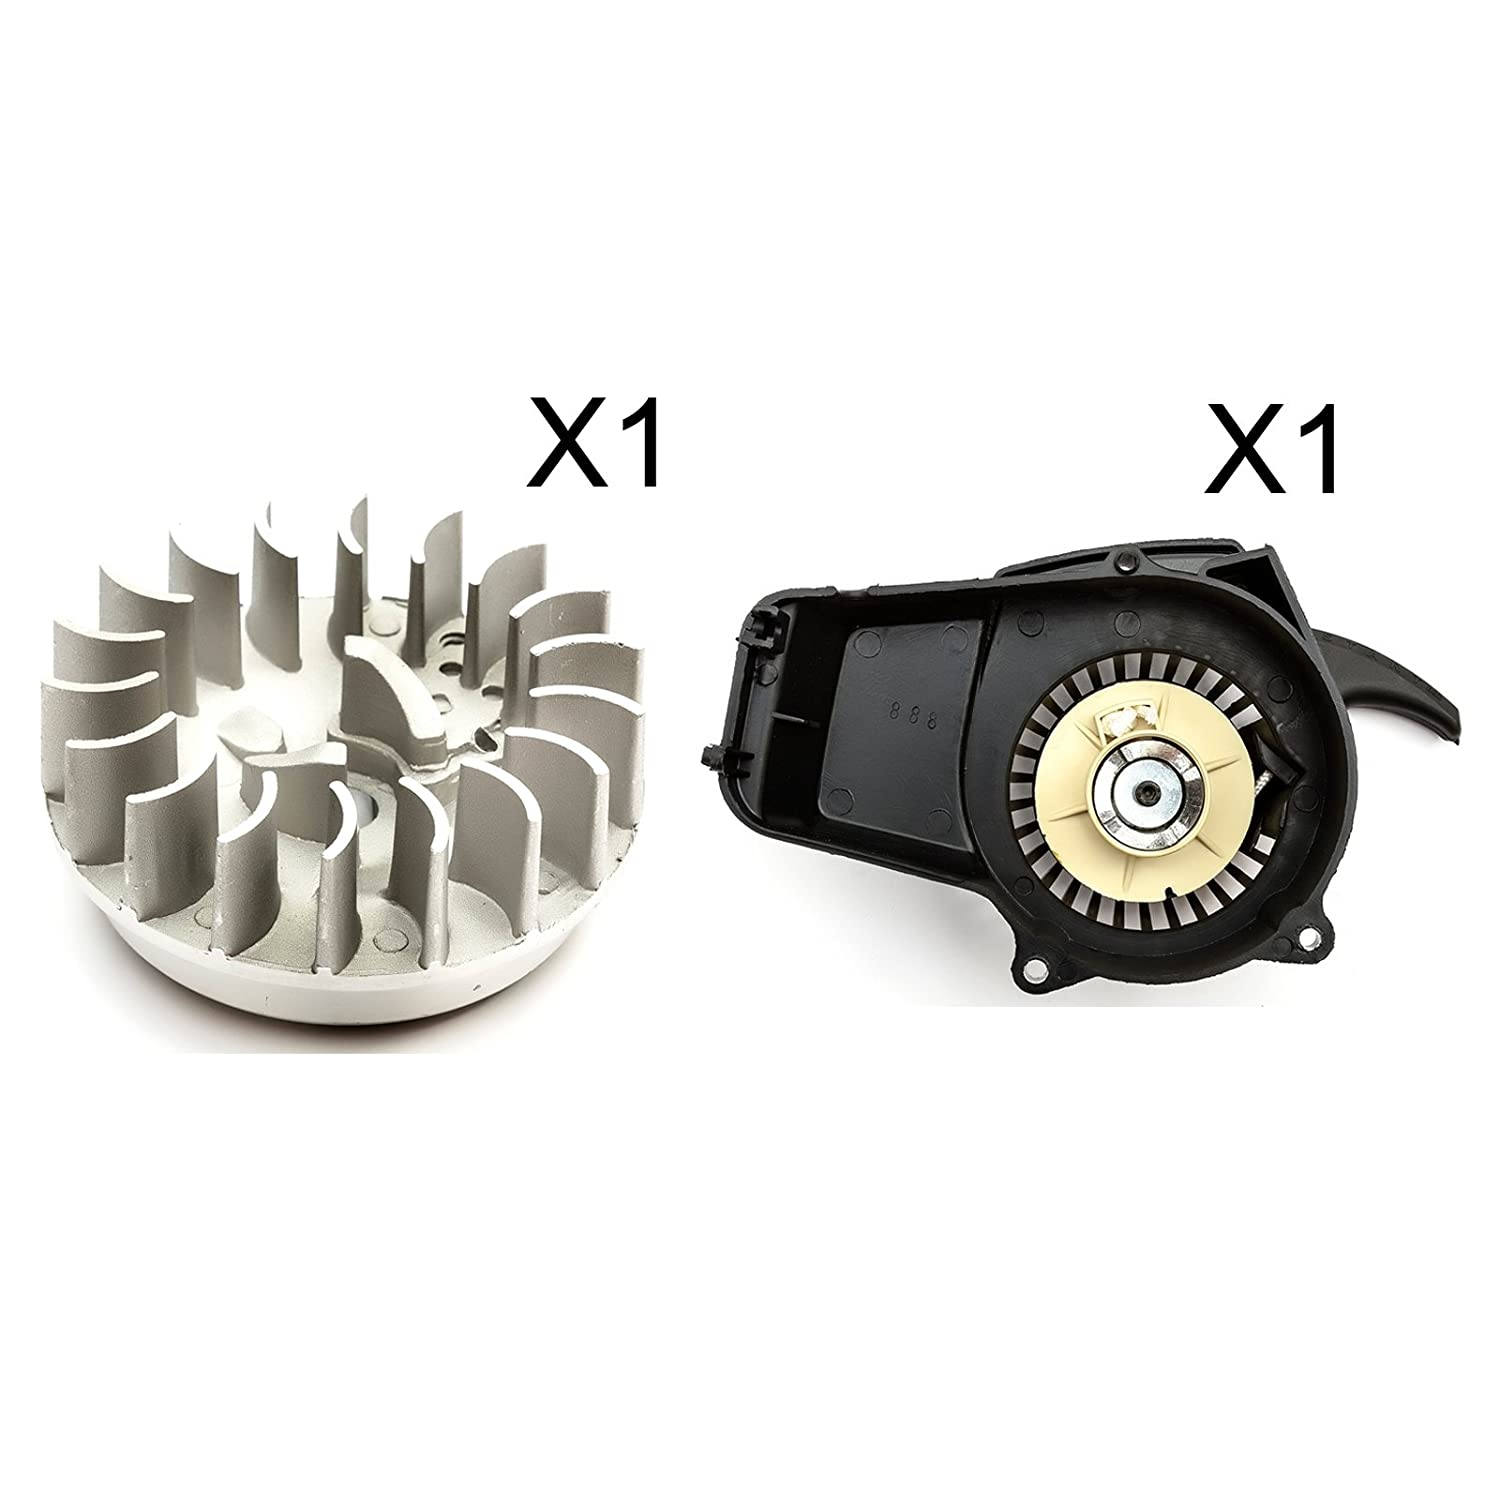 Bundle - 2 Items: Pull Start Plastic & Metal Pawl Type 1 + Flywheel Mini Moto Air Cooled PetrolScooter